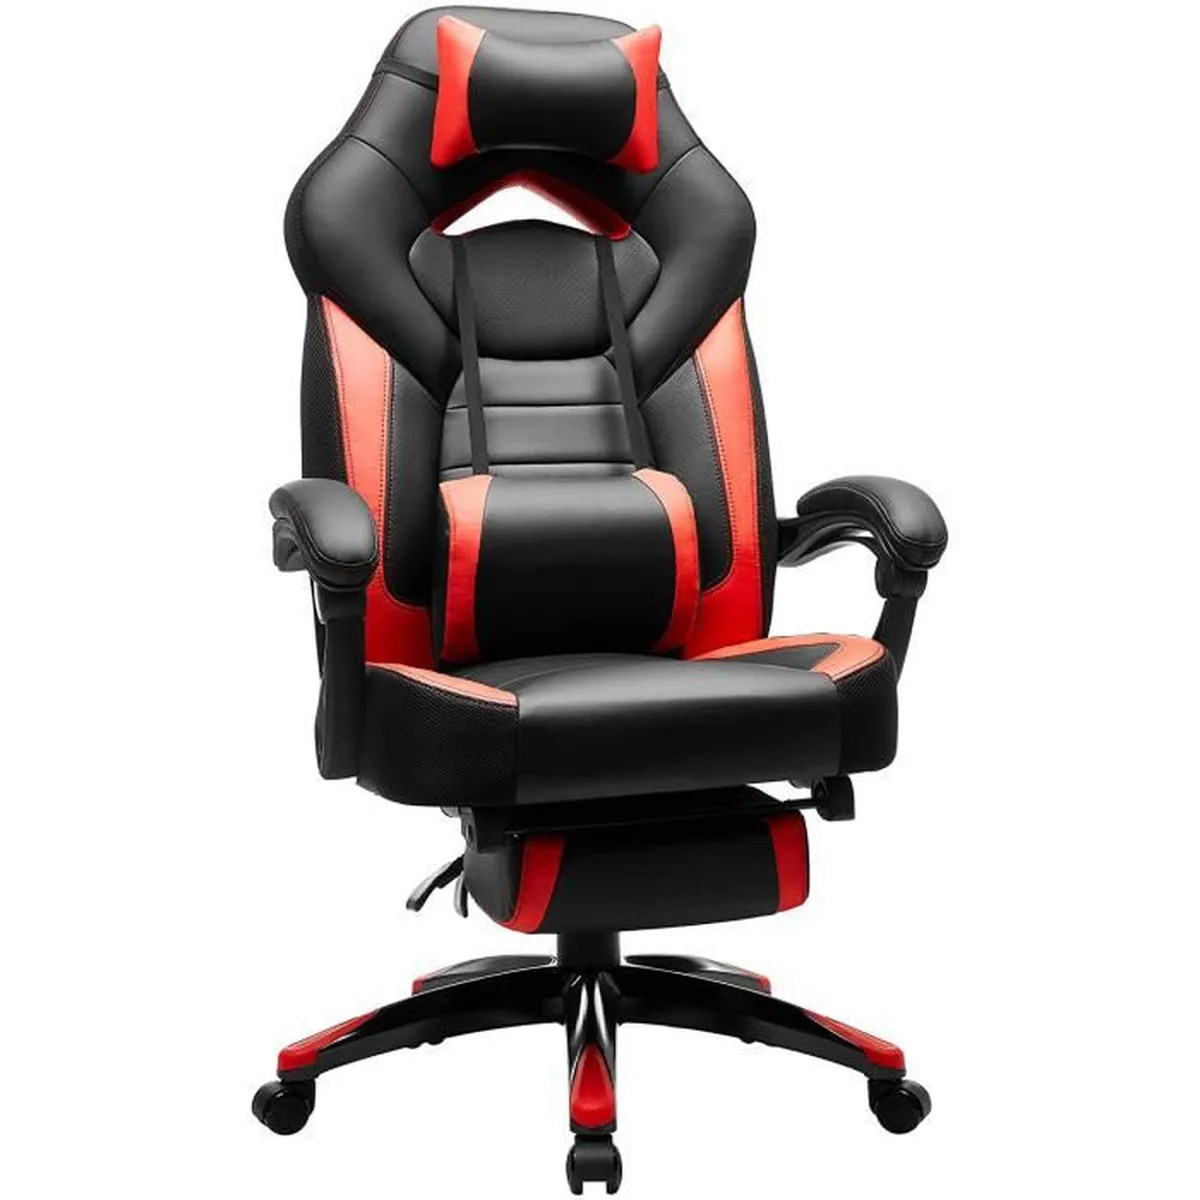 Promo Chaise Gamer Songmics Fauteuil Gamer Ergonomique Chaise De Bureau Inclianble